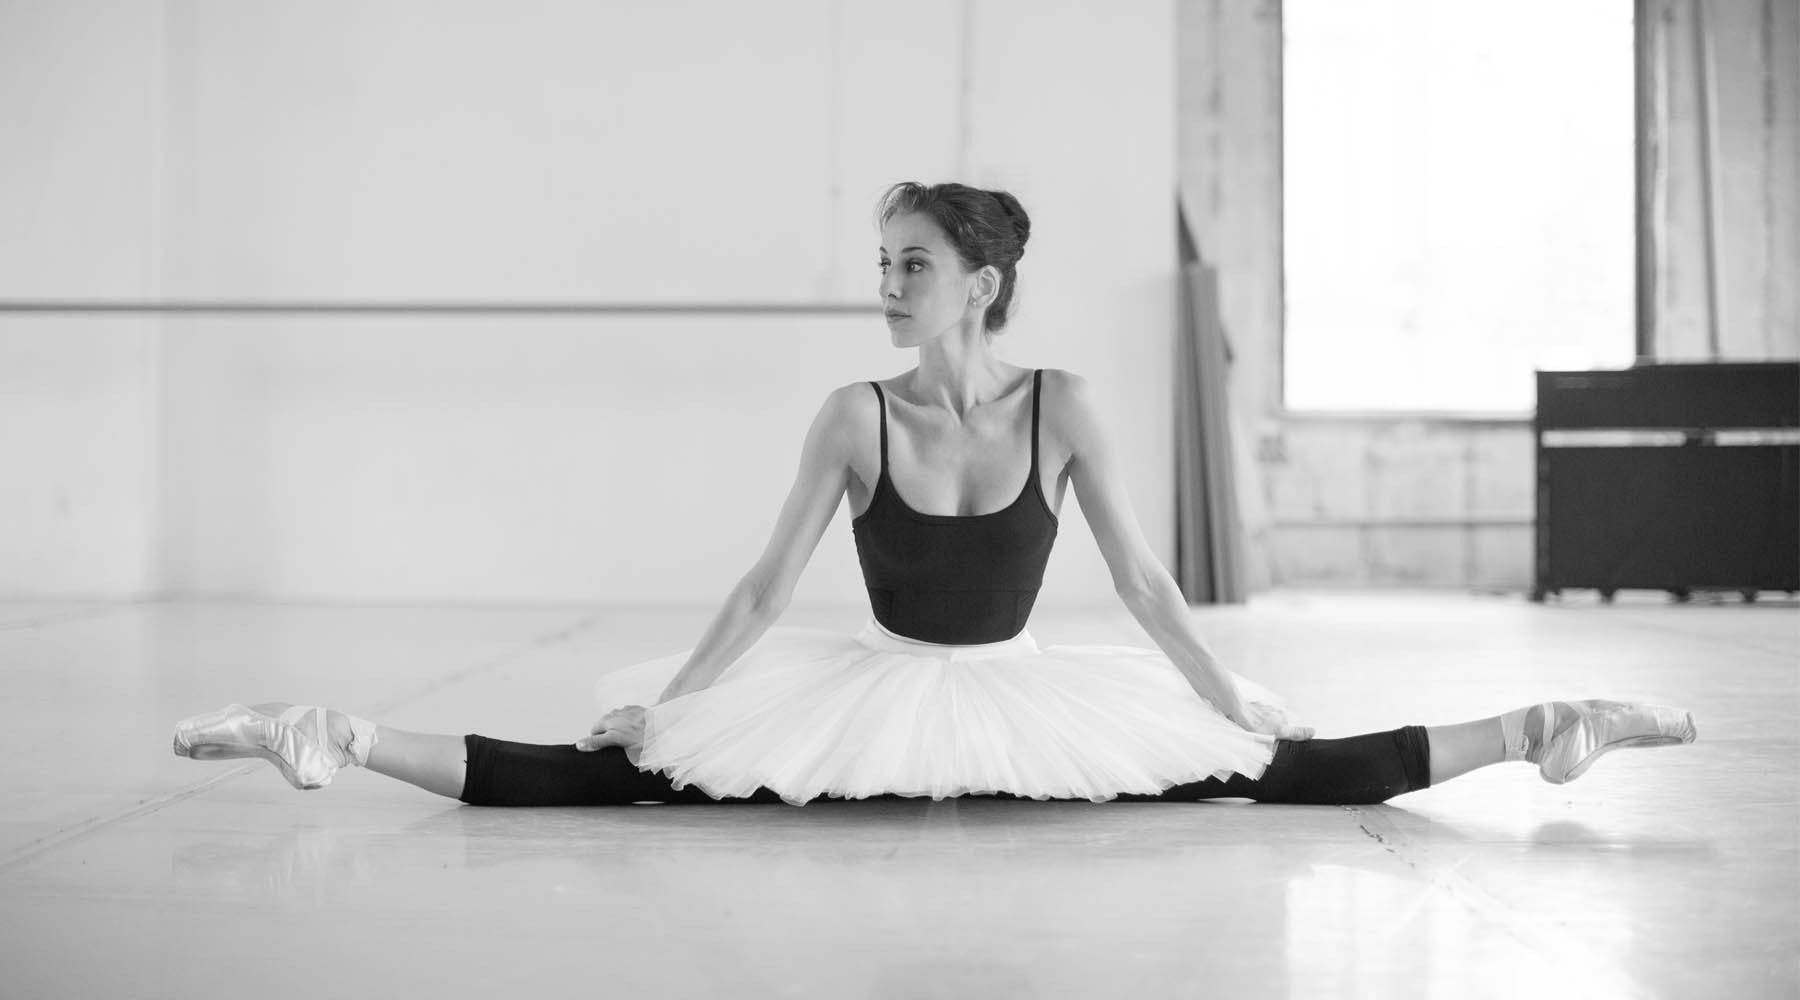 Sonia Rodriguez National Ballet of Canada and Zarely Role Model